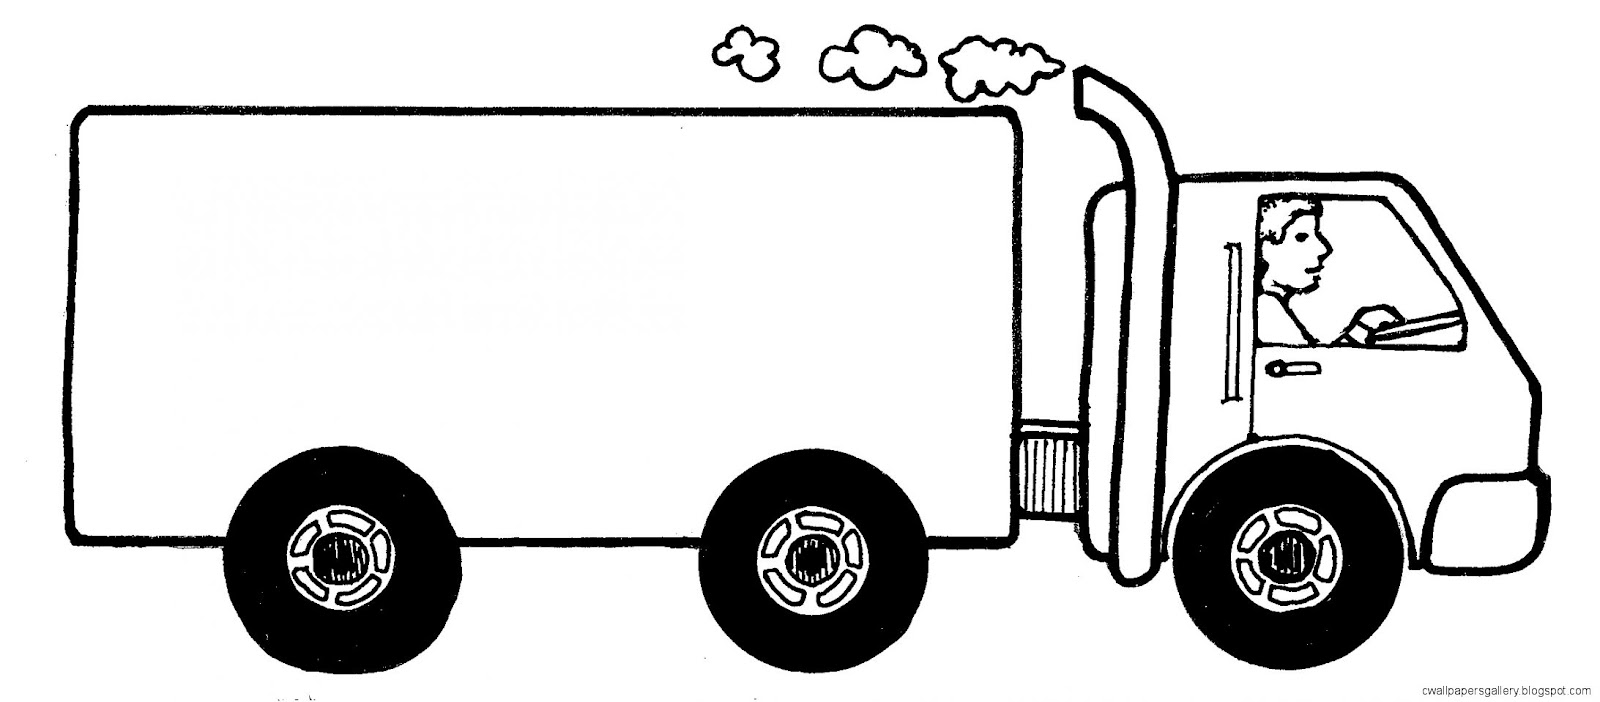 Truck Clip Art Black and White